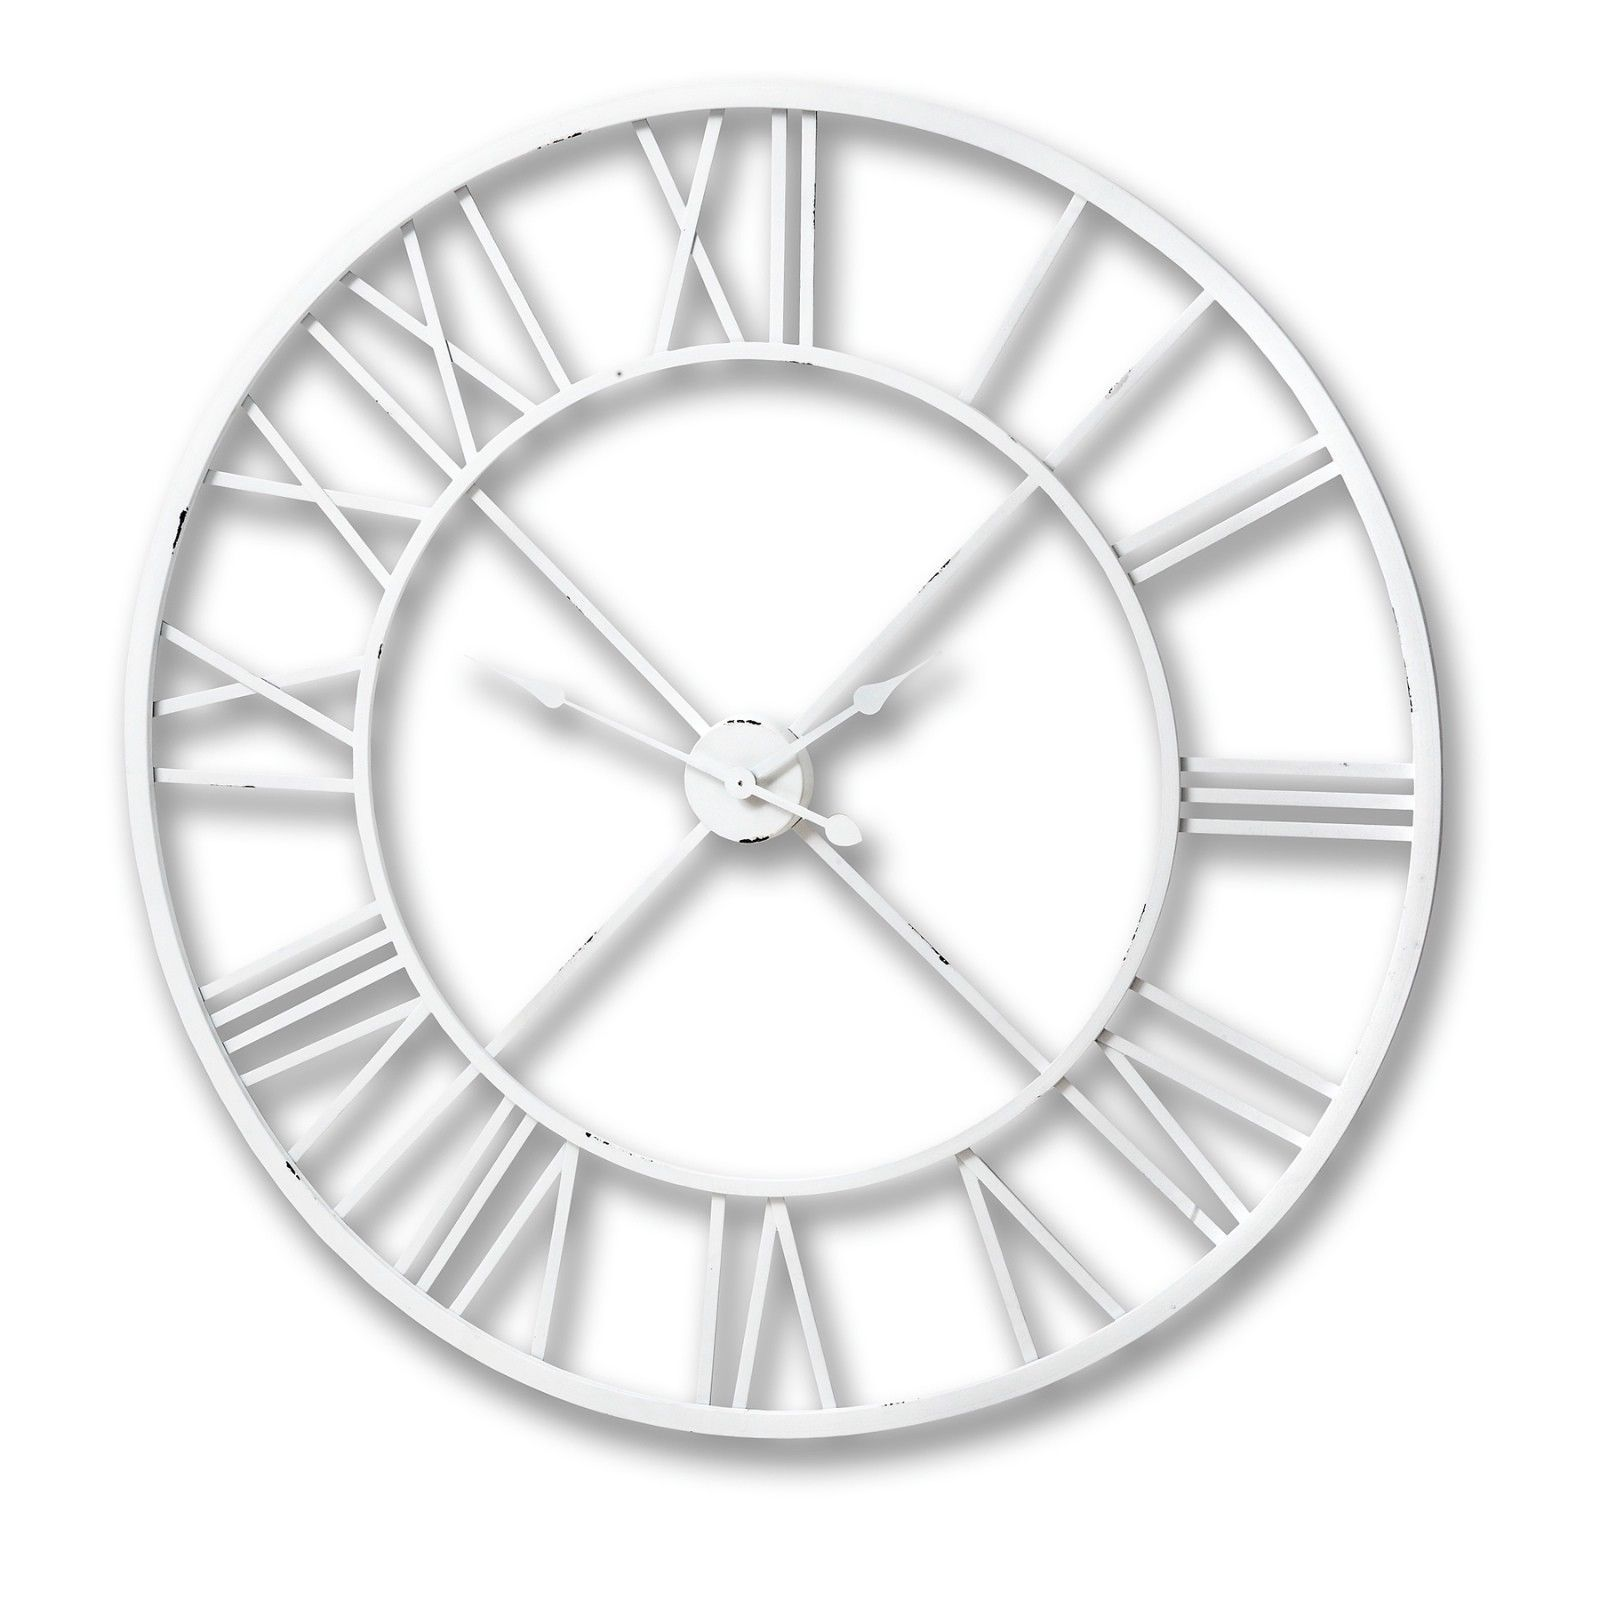 Large Antique White Iron Skeleton Metal Roman Numeral Wall Clock H17555 100cm Ebay Wall Clock Skeleton Wall Clock Roman Numeral Wall Clock